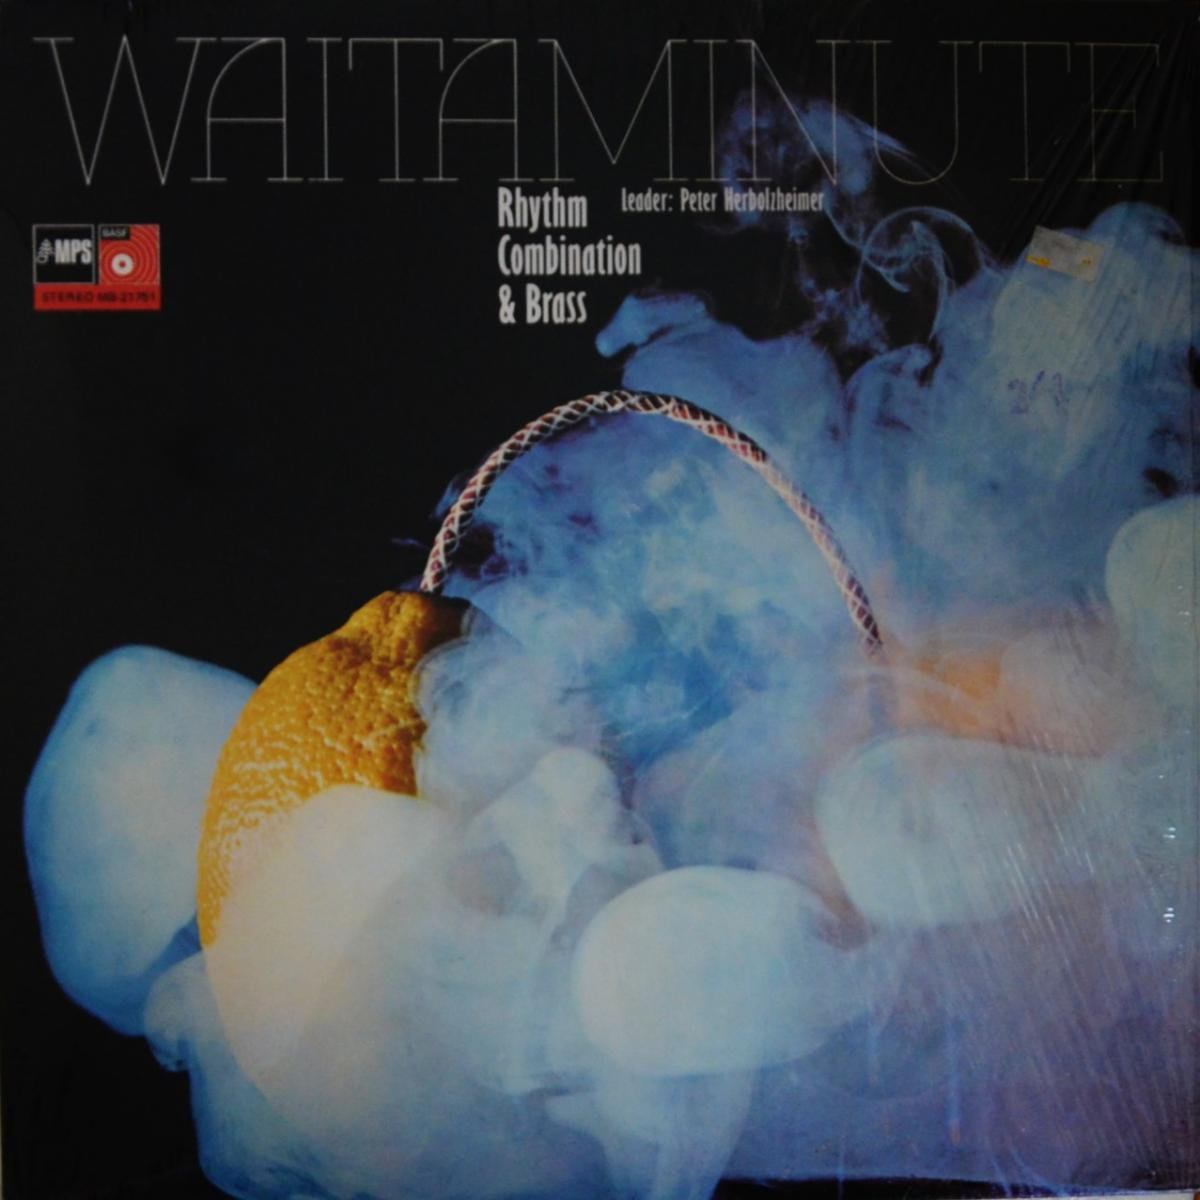 RHYTHM COMBINATION & BRASS (Peter Herbolzheimer) / WAITAMINUTE (LP)